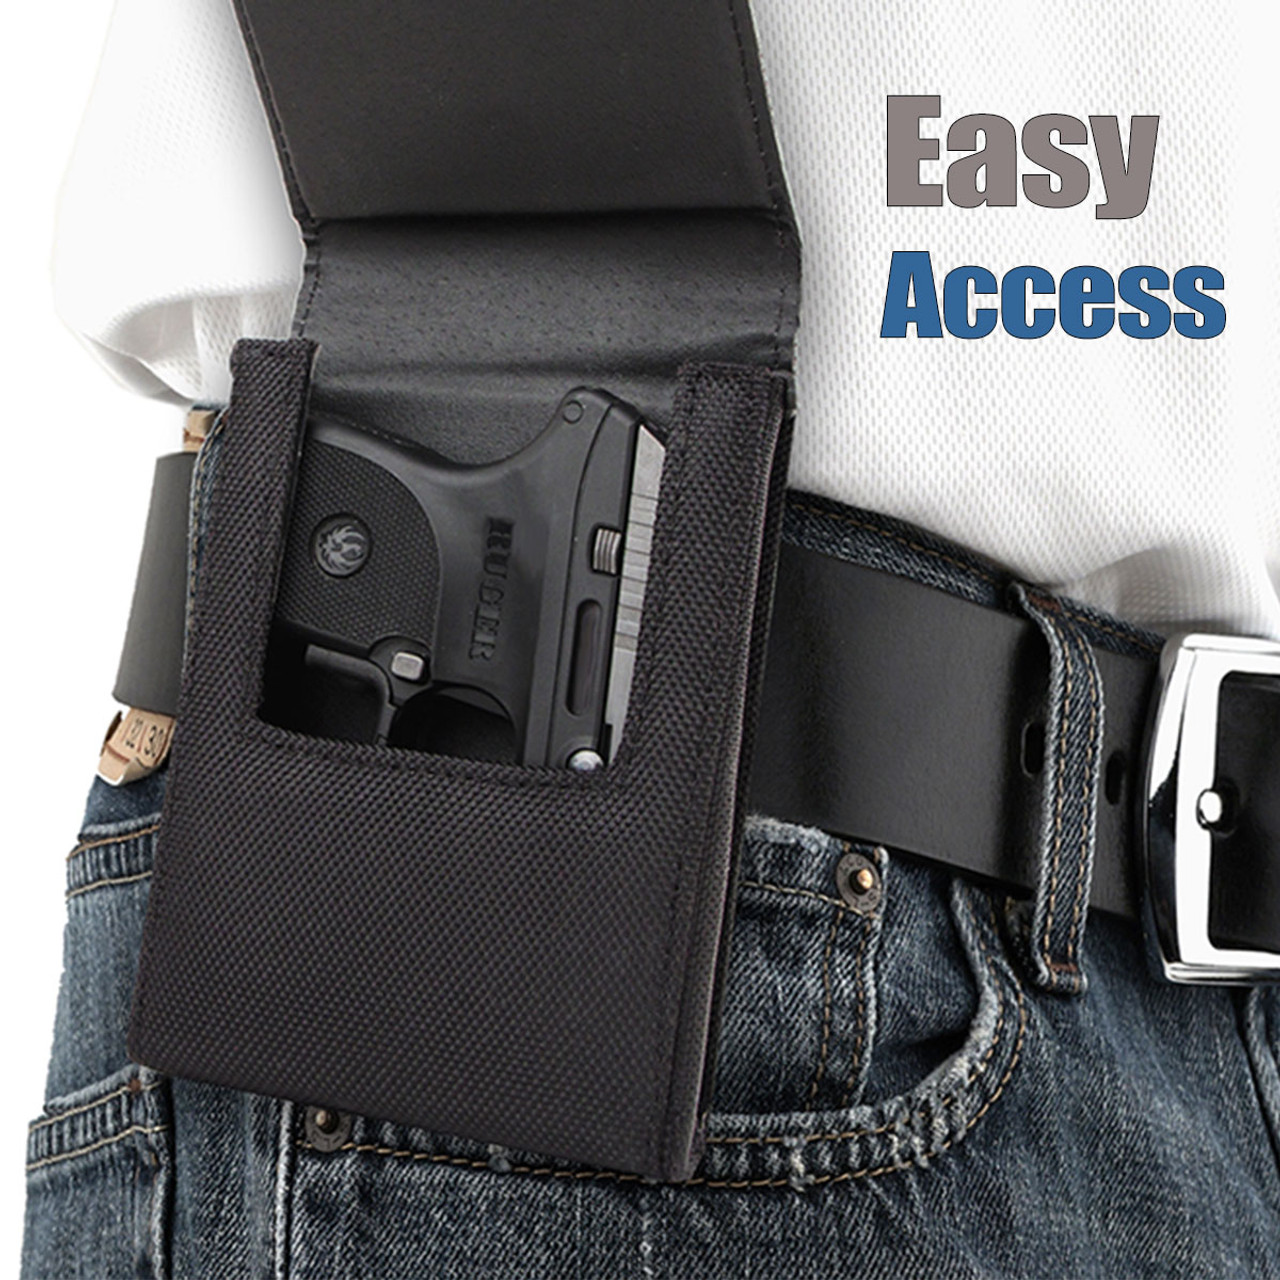 Taurus .38 Special Sneaky Pete Holster (Belt Clip)